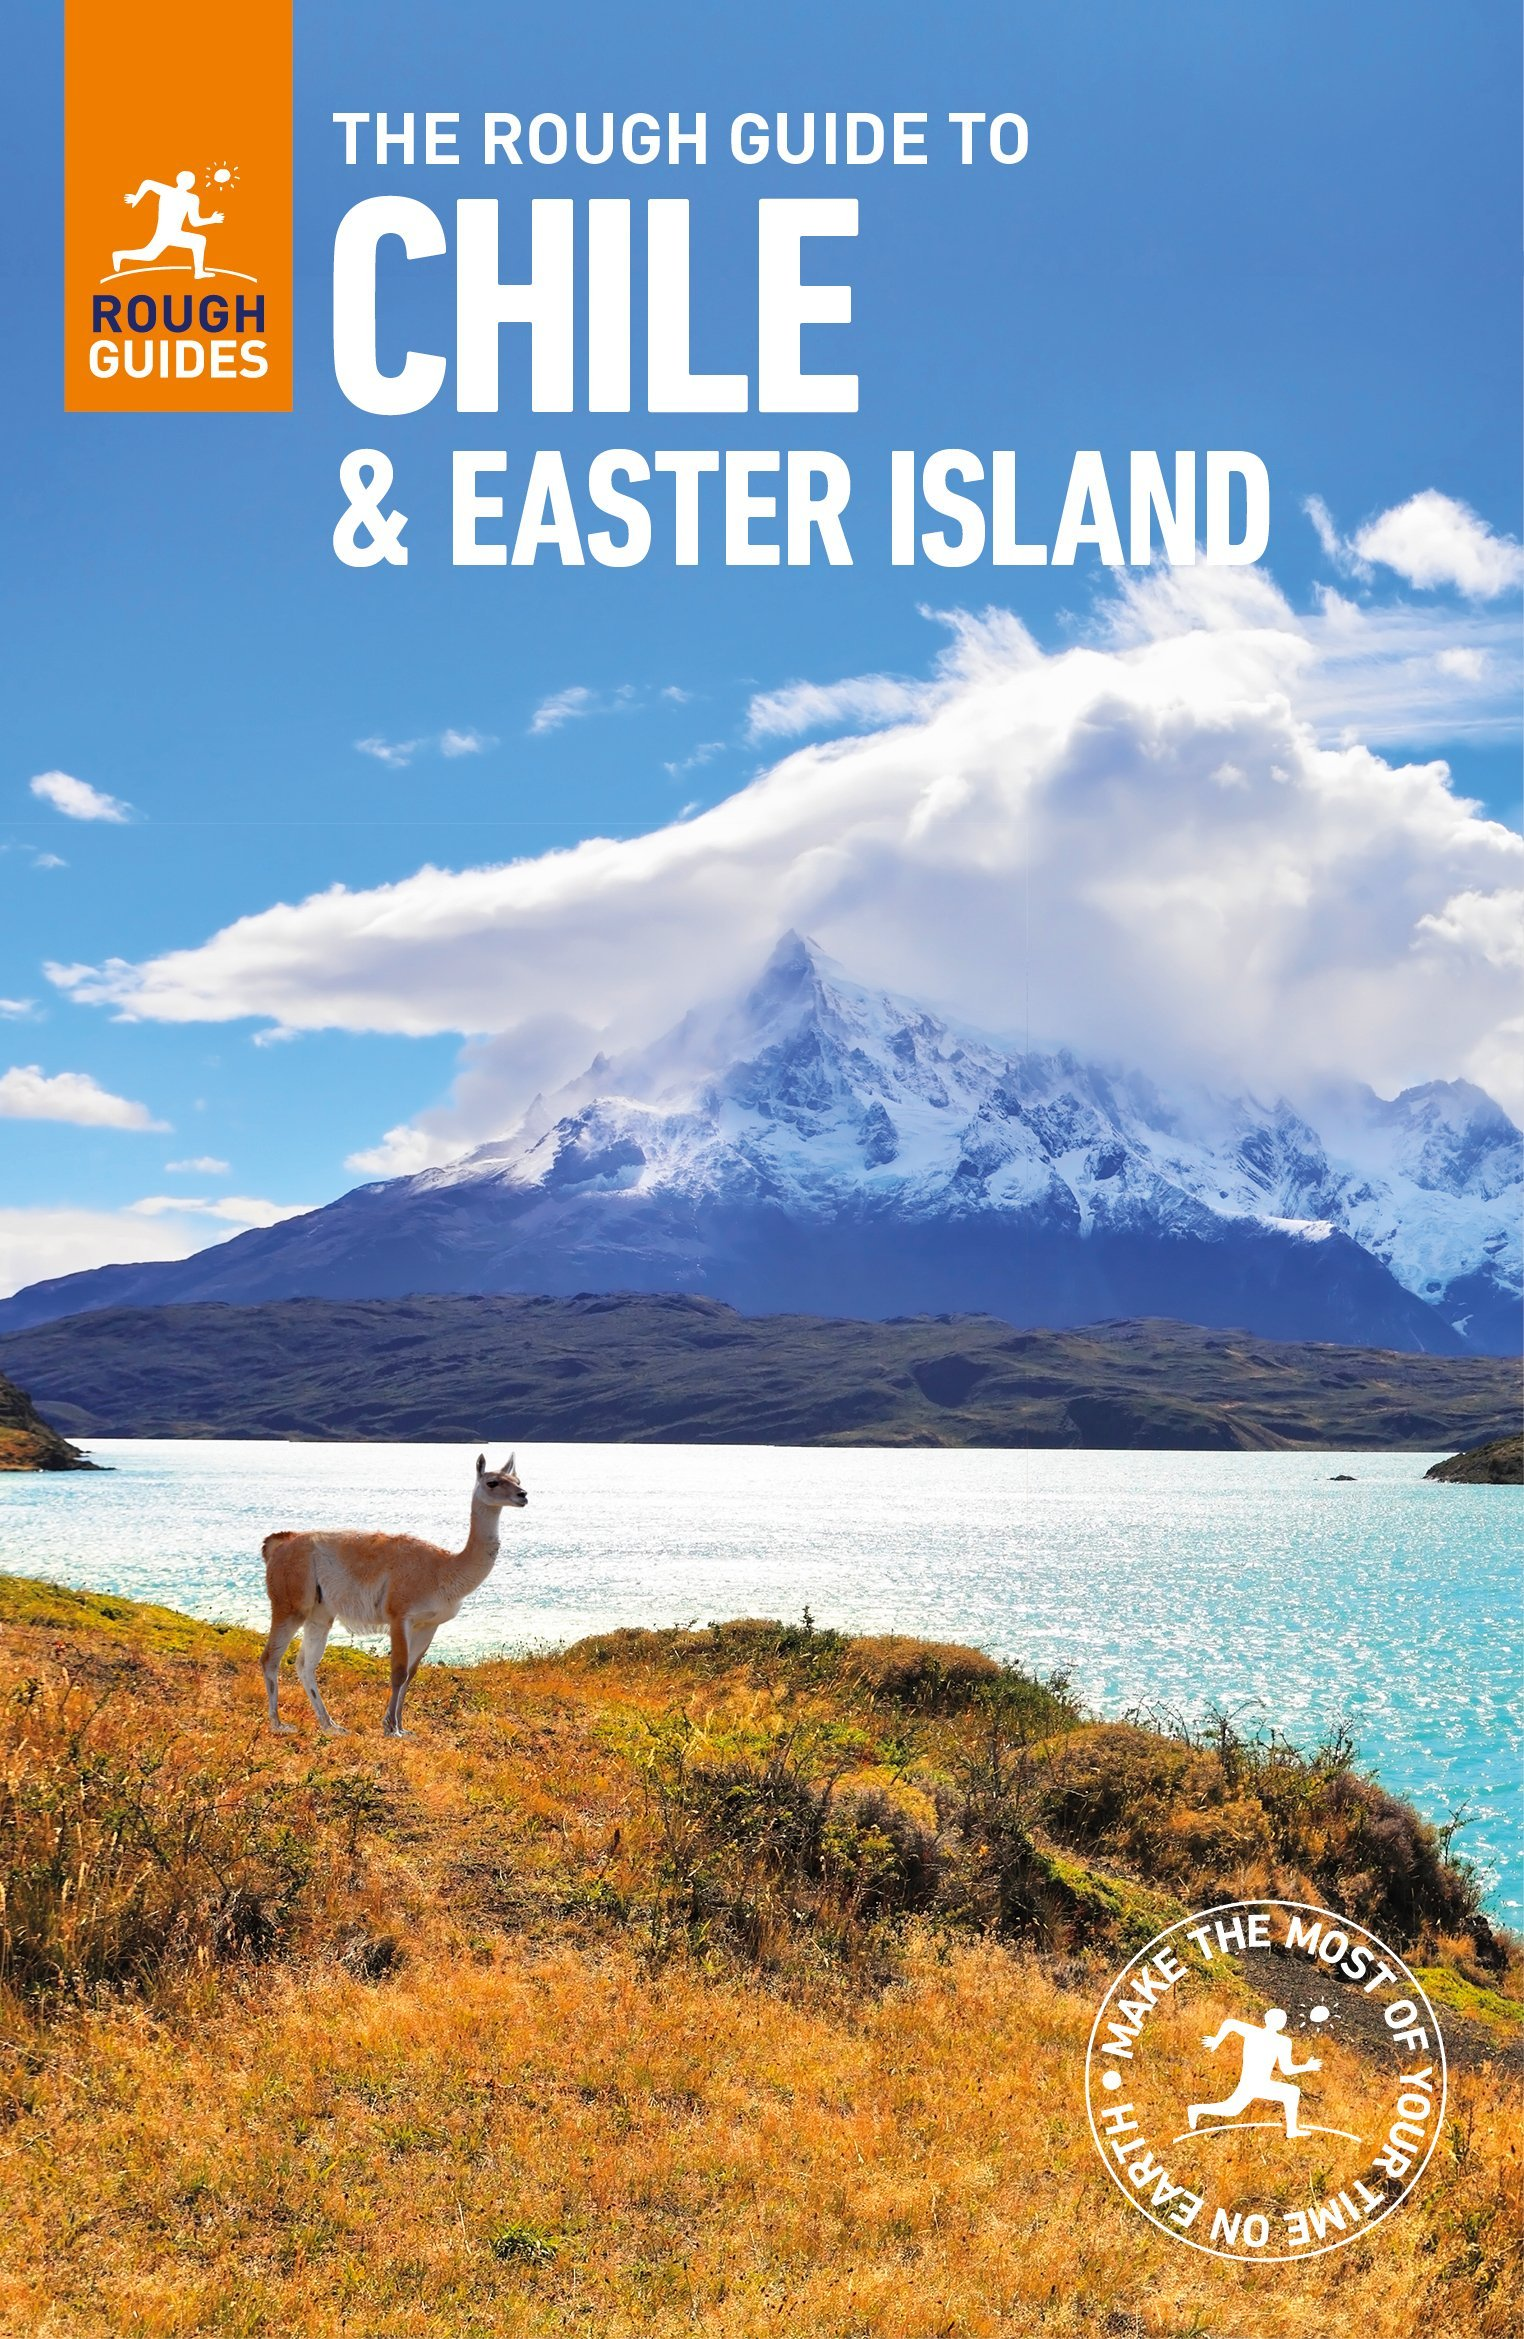 Rough Guide Chile & Easter Island (Chili en Paaseiland) 9780241311653  Rough Guide Rough Guides  Reisgidsen Chili, Argentinië, Patagonië